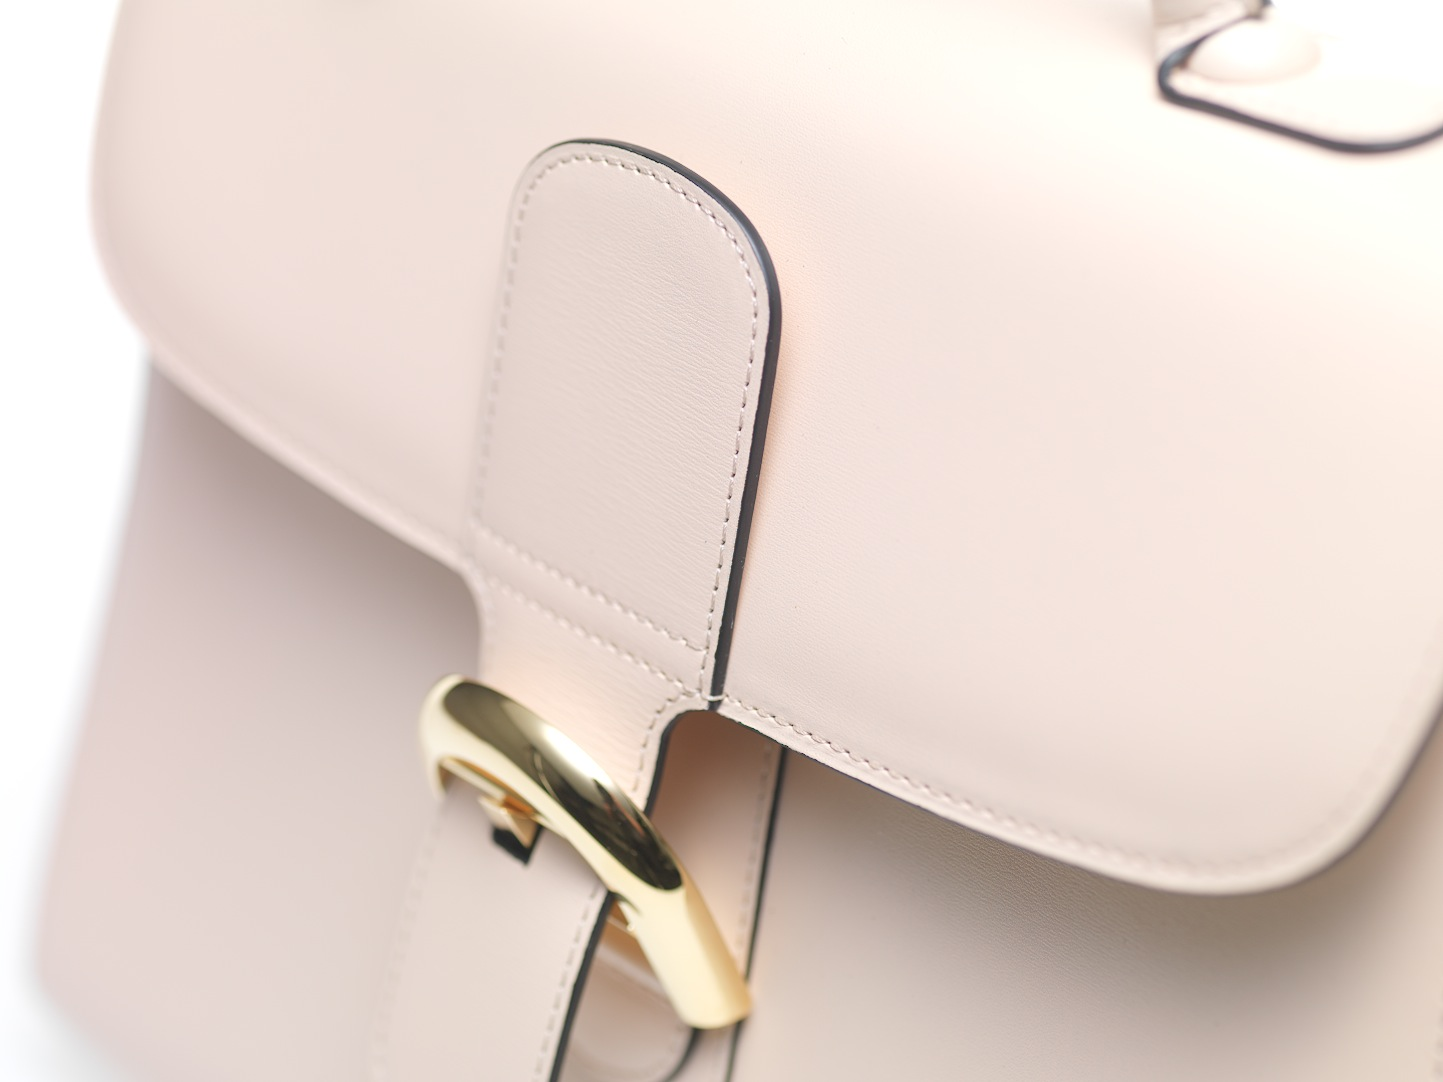 DELVAUX, from the Kingdom of Belgium since 1829